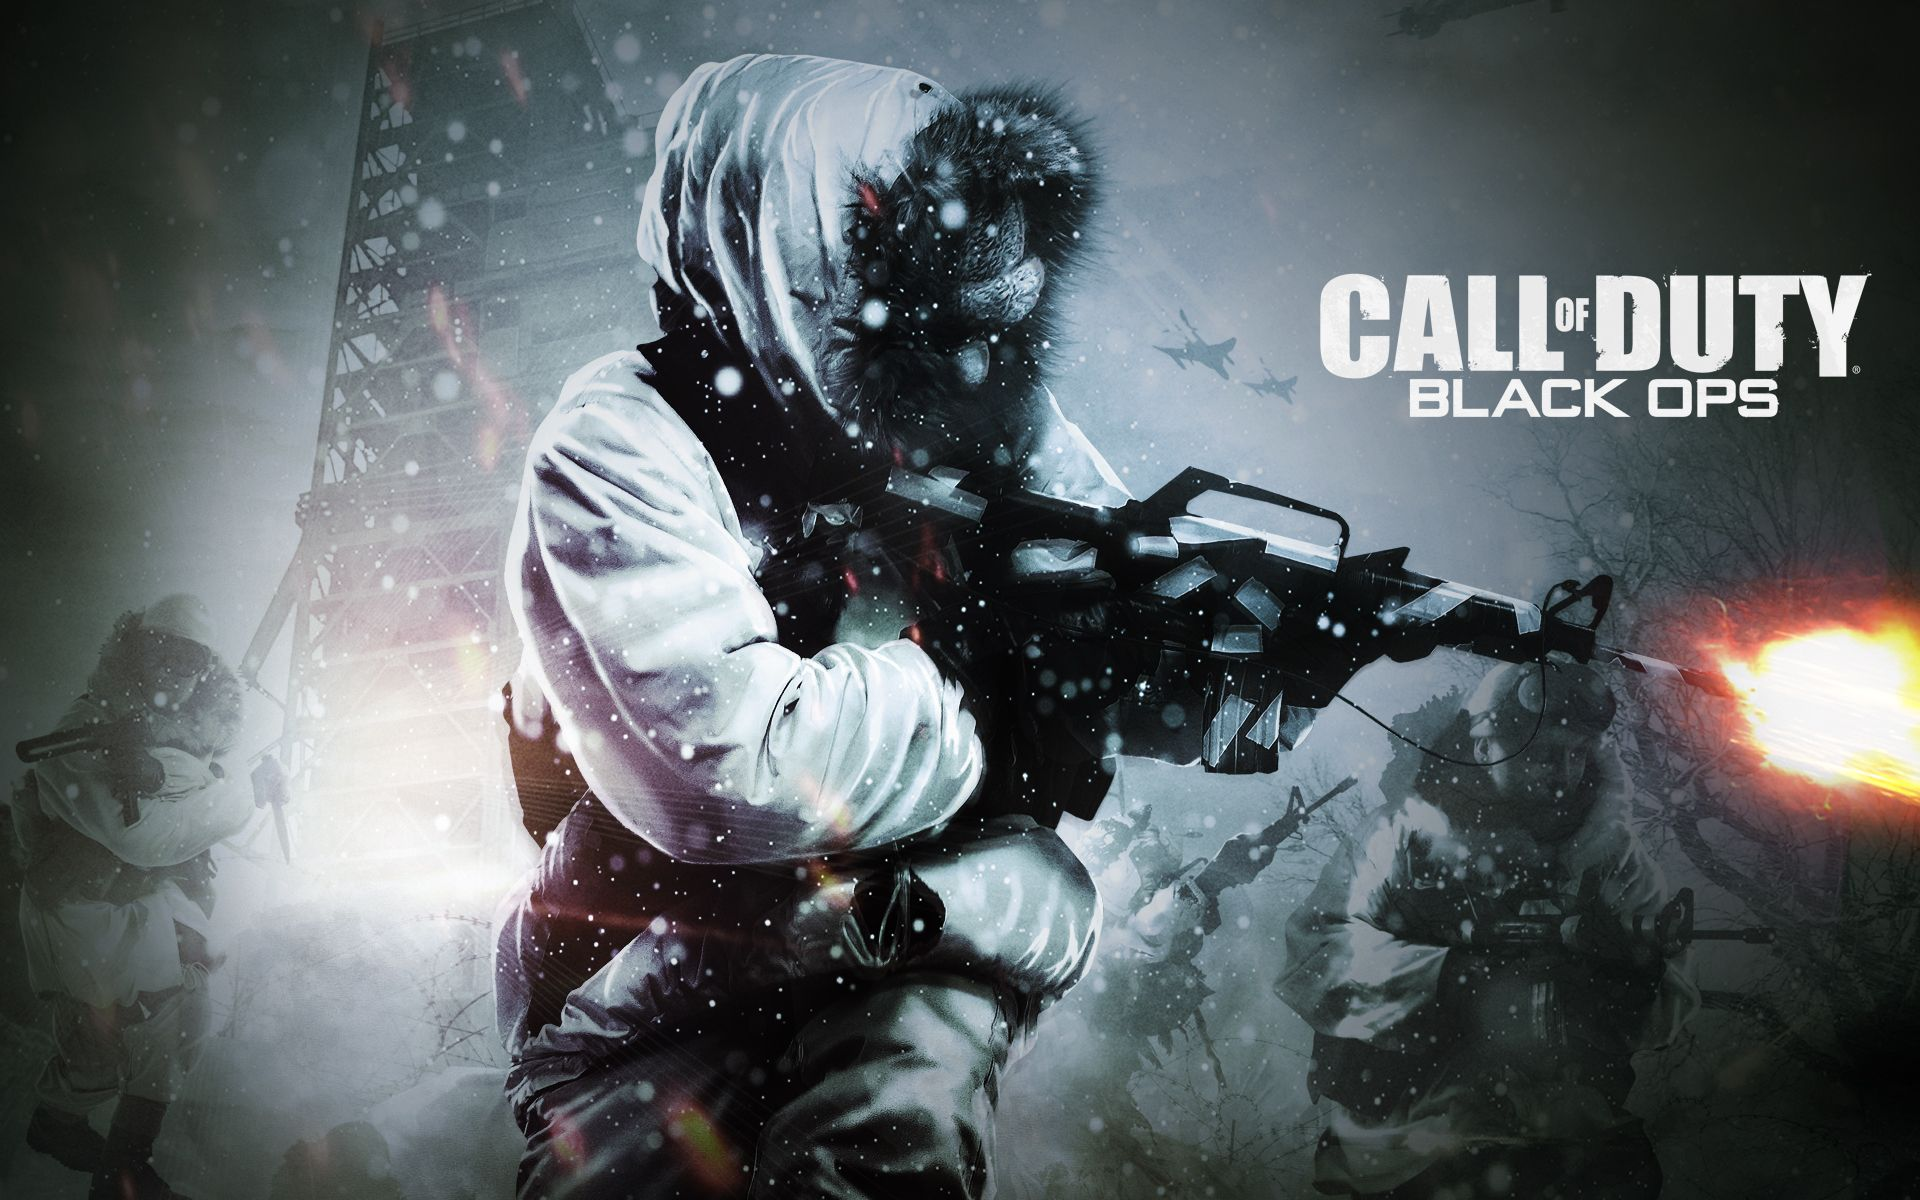 Call Of Duty Black Ops Wallpapers Top Free Call Of Duty